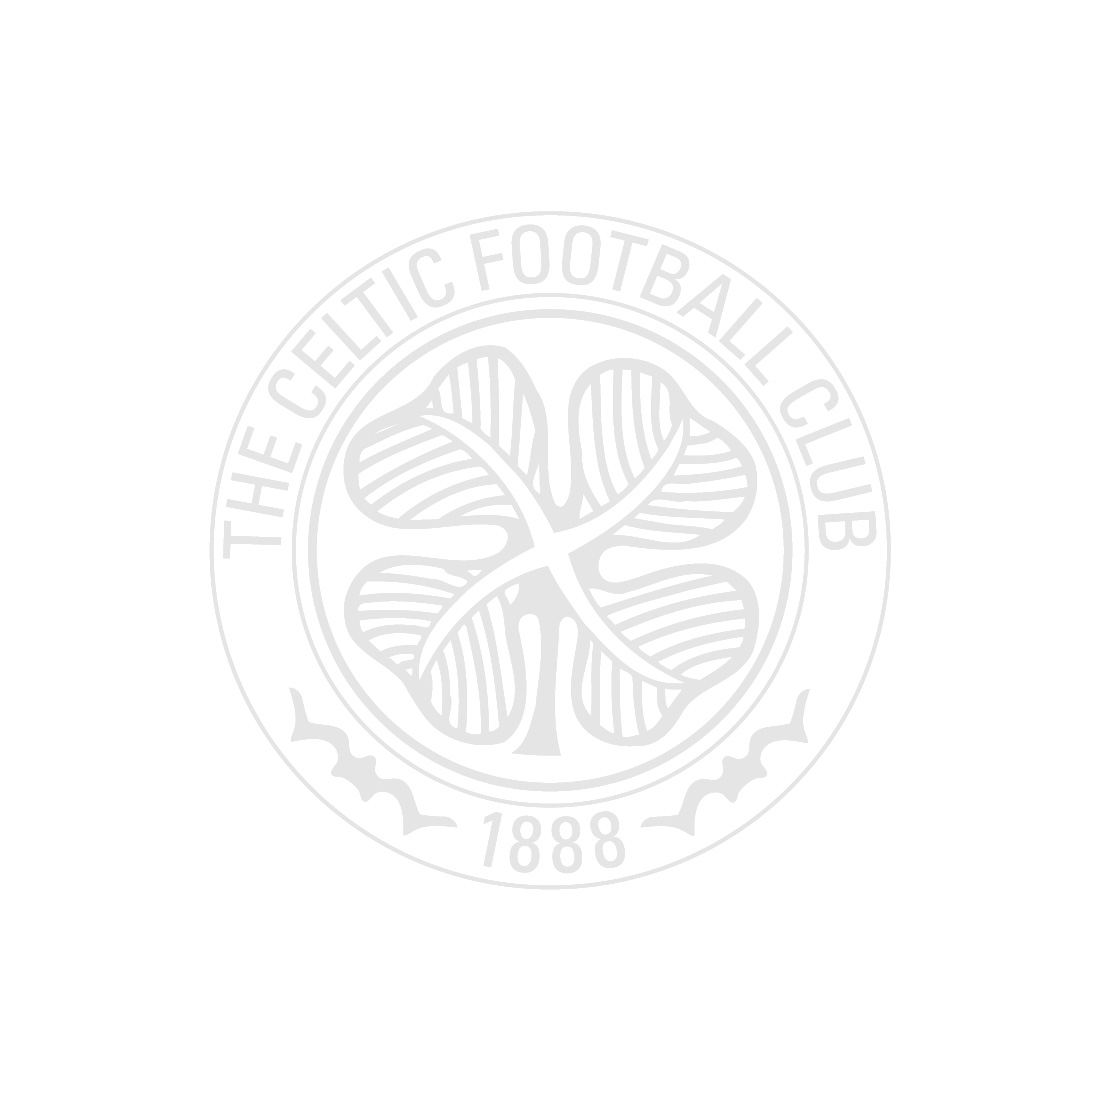 2018 Champions Scarf - This Is How It Feels To Be Celtic